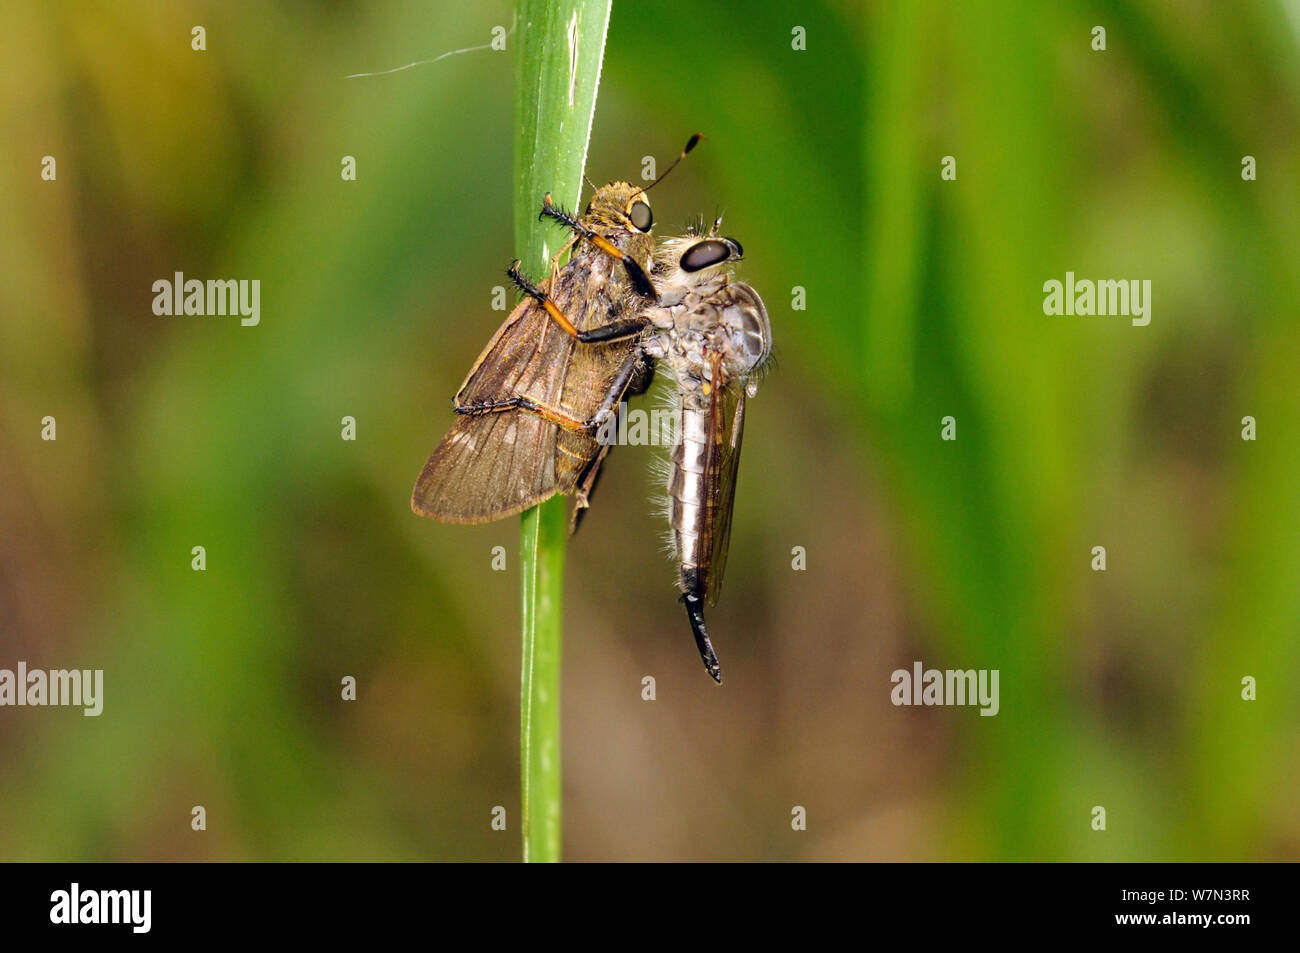 Robberfly (Asiidae) with a captured skipper butterfly (Hesperidae), Manabi Province, Ecuador. Stock Photo